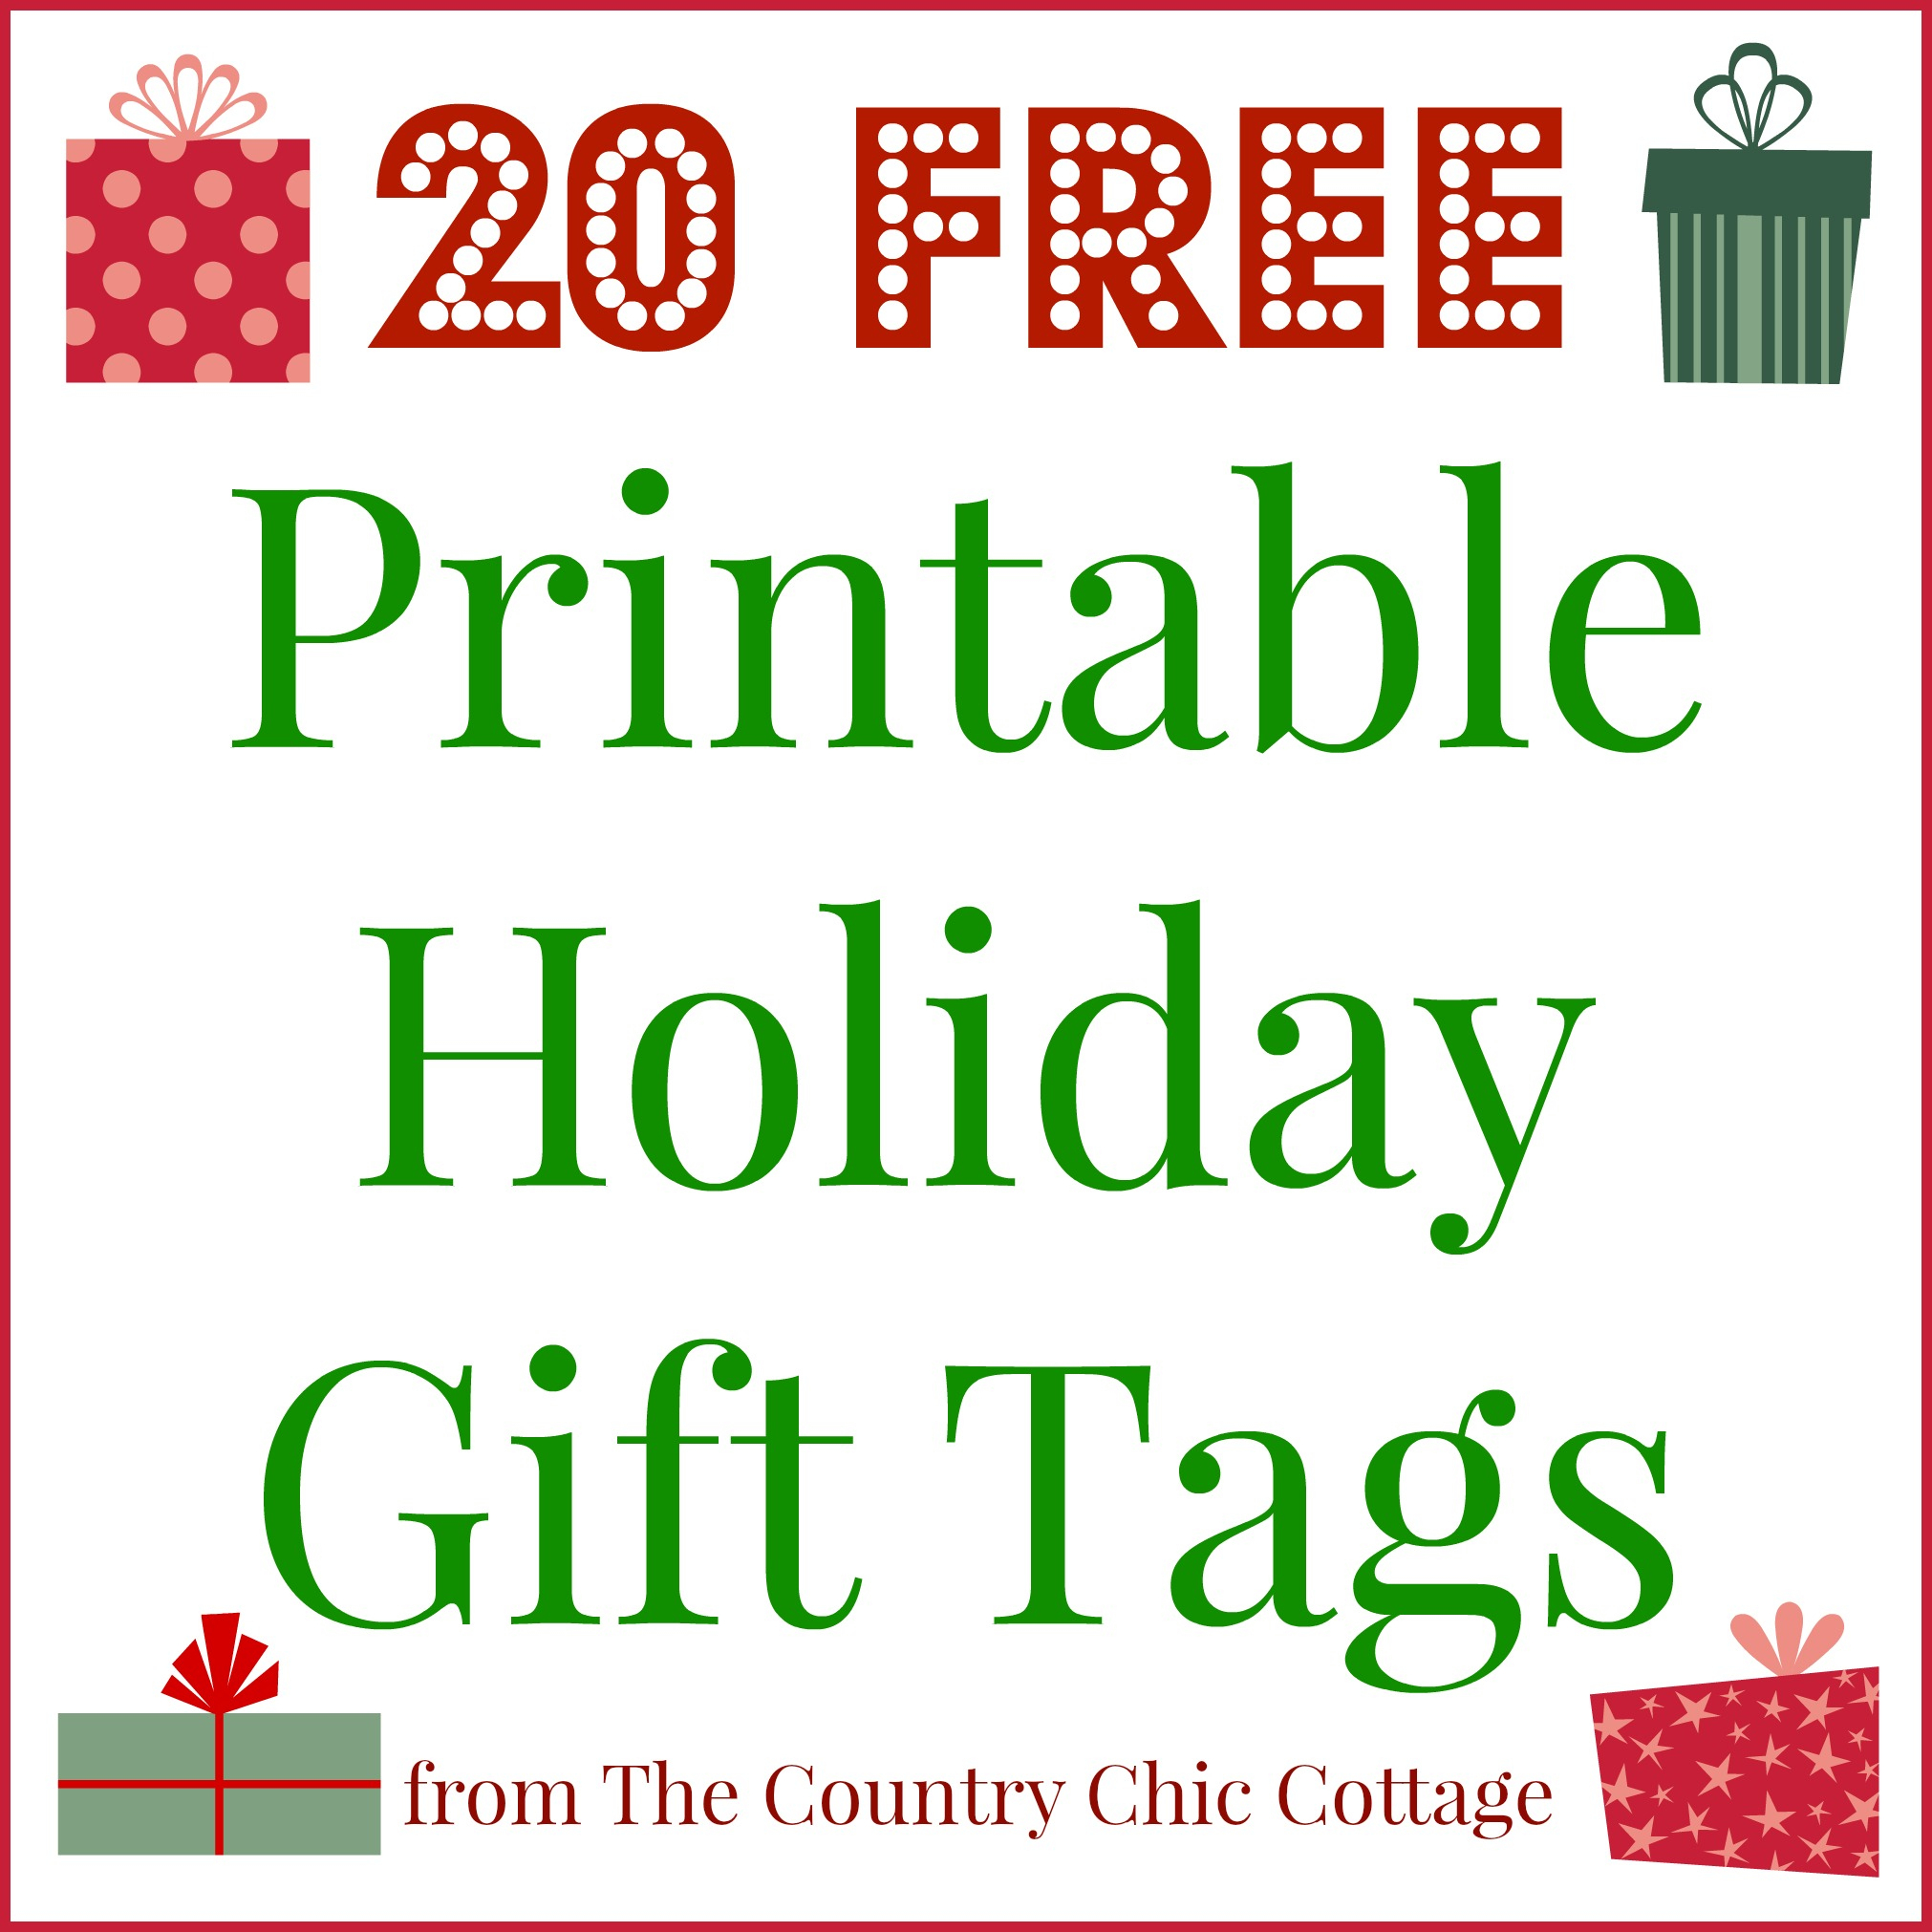 20 Printable Holiday Gift Tags (For Free!!) - The Country Chic Cottage - Free Printable Santa Gift Tags